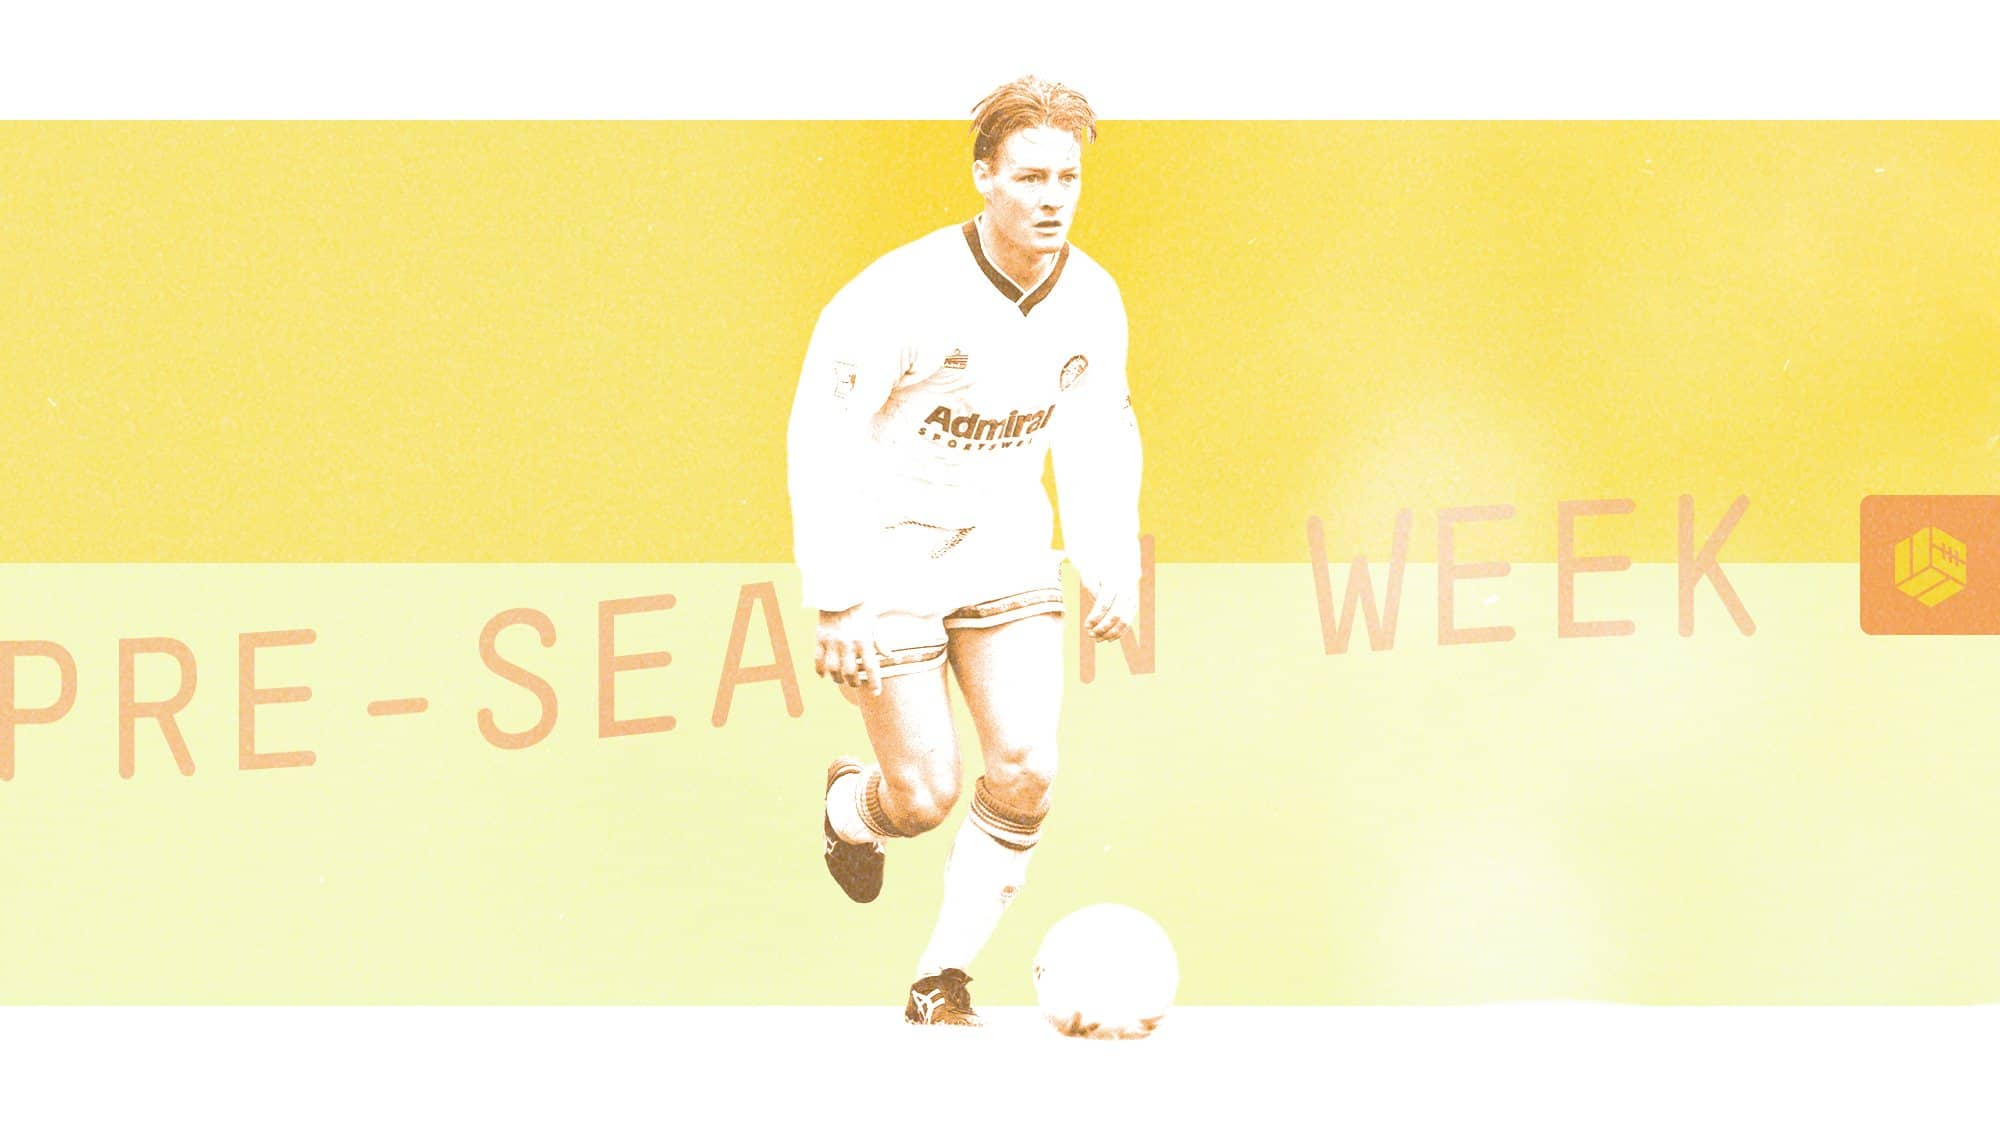 David Batty in Leeds' 92/93 home kit, running with the ball